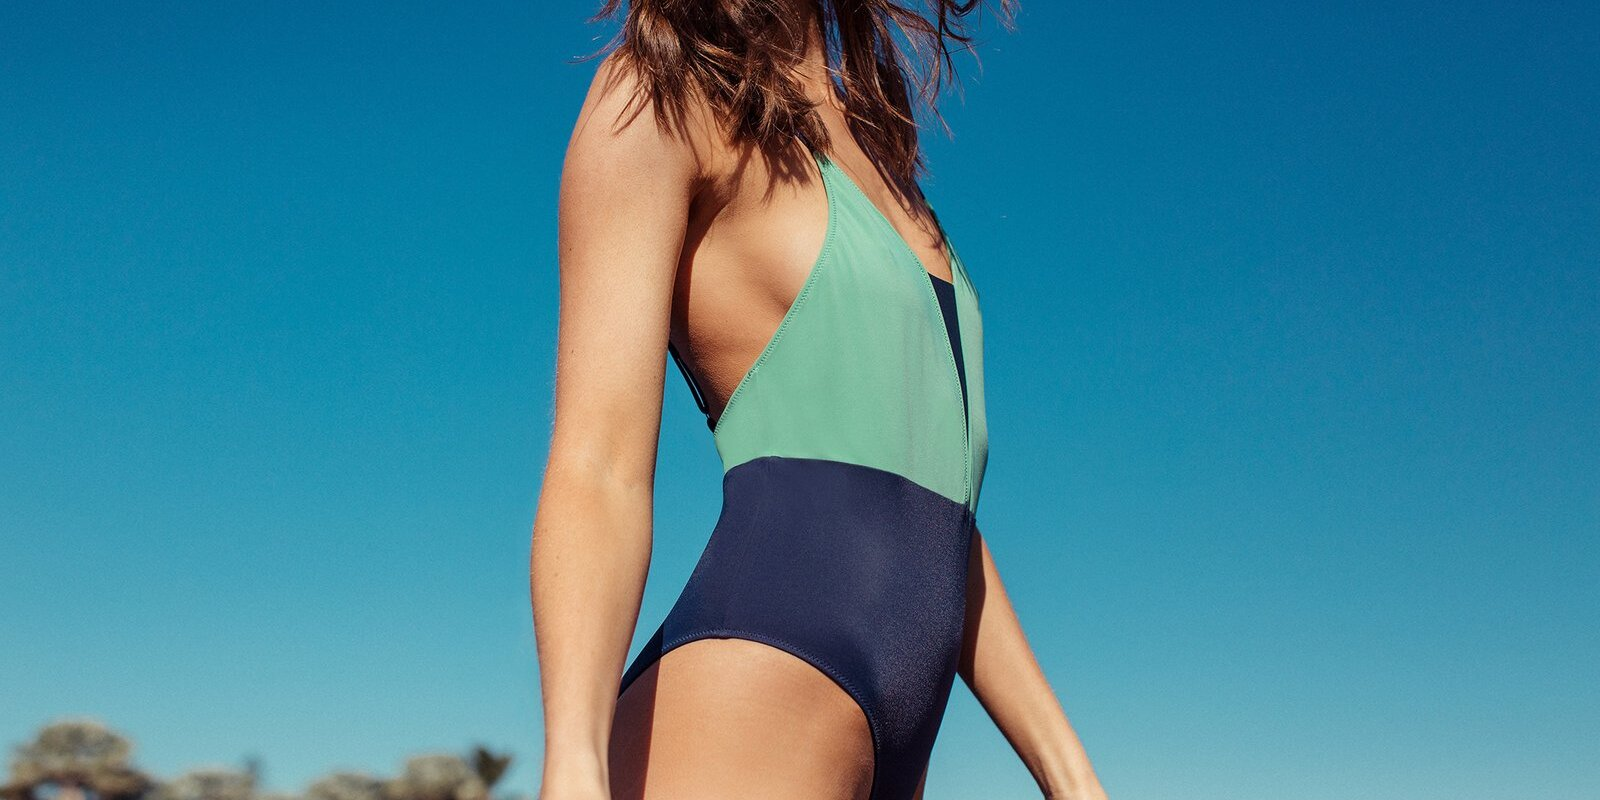 This New Swimsuit Line Is So Comfortable You Can Actually Work Out In It